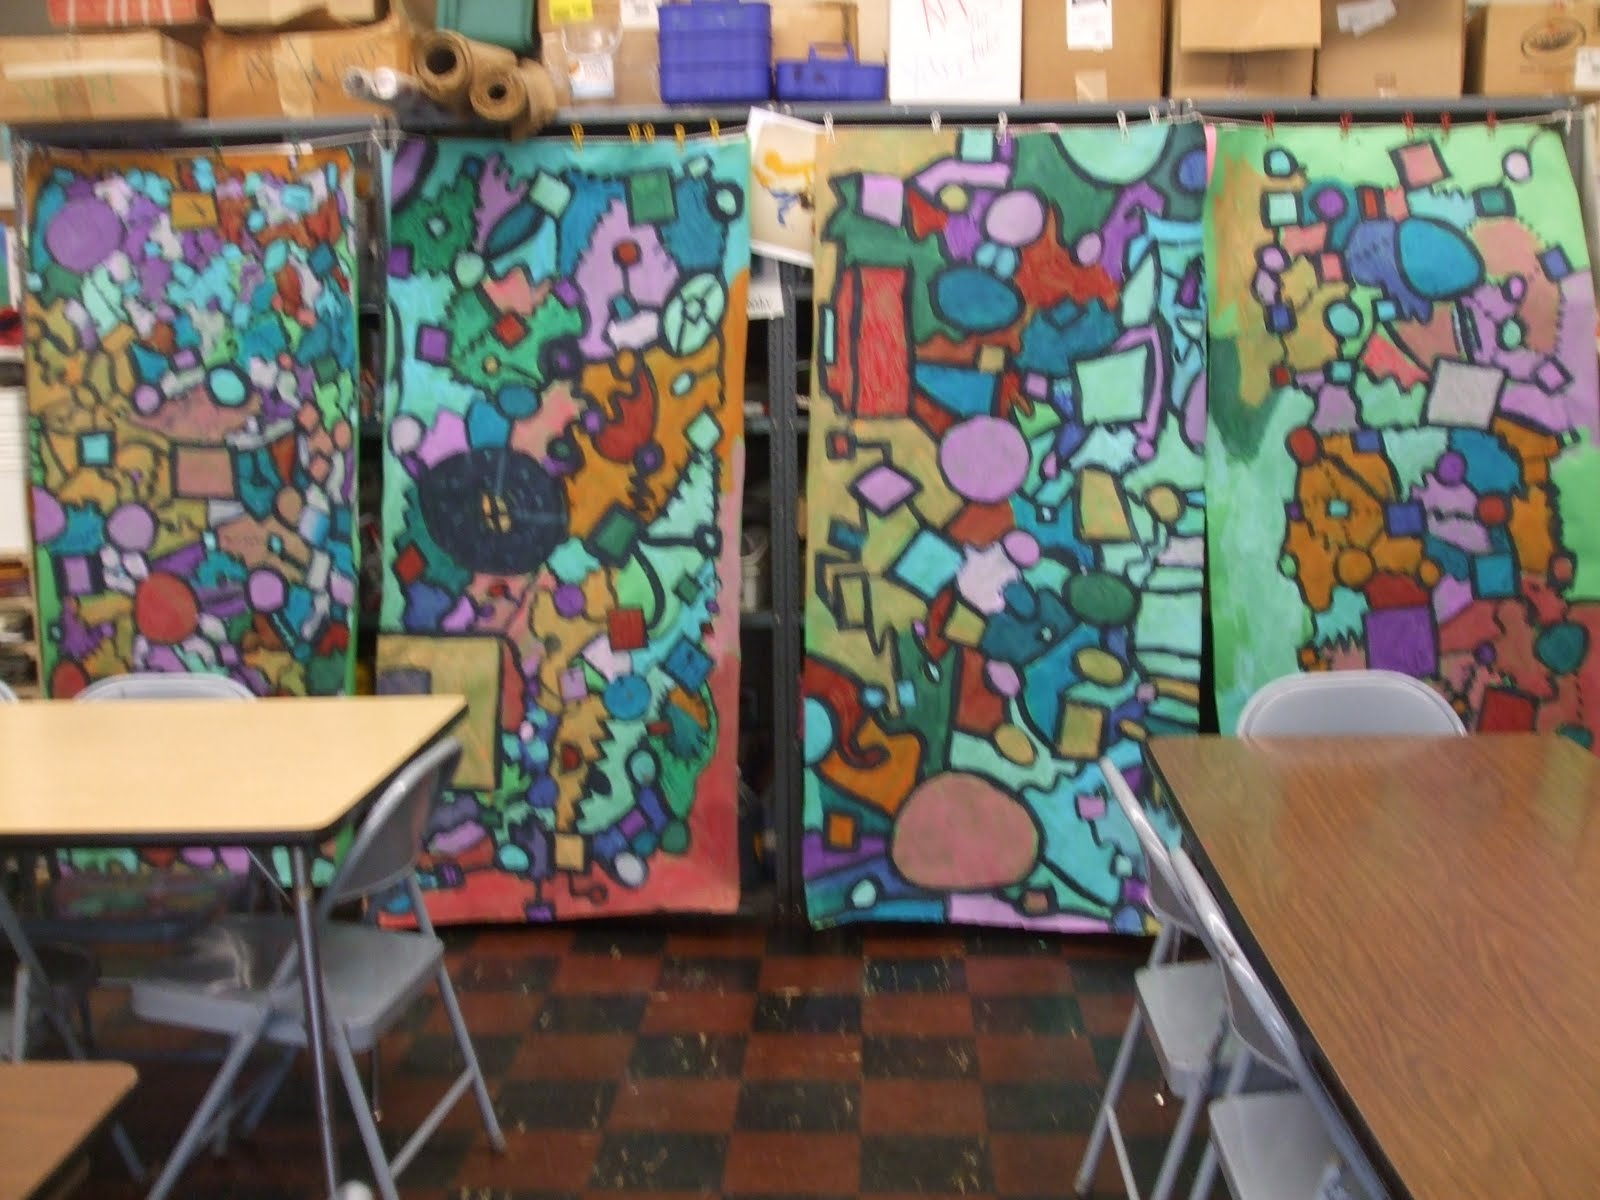 rainbow skies dragonflies collaborative abstract murals 4th grade. Black Bedroom Furniture Sets. Home Design Ideas